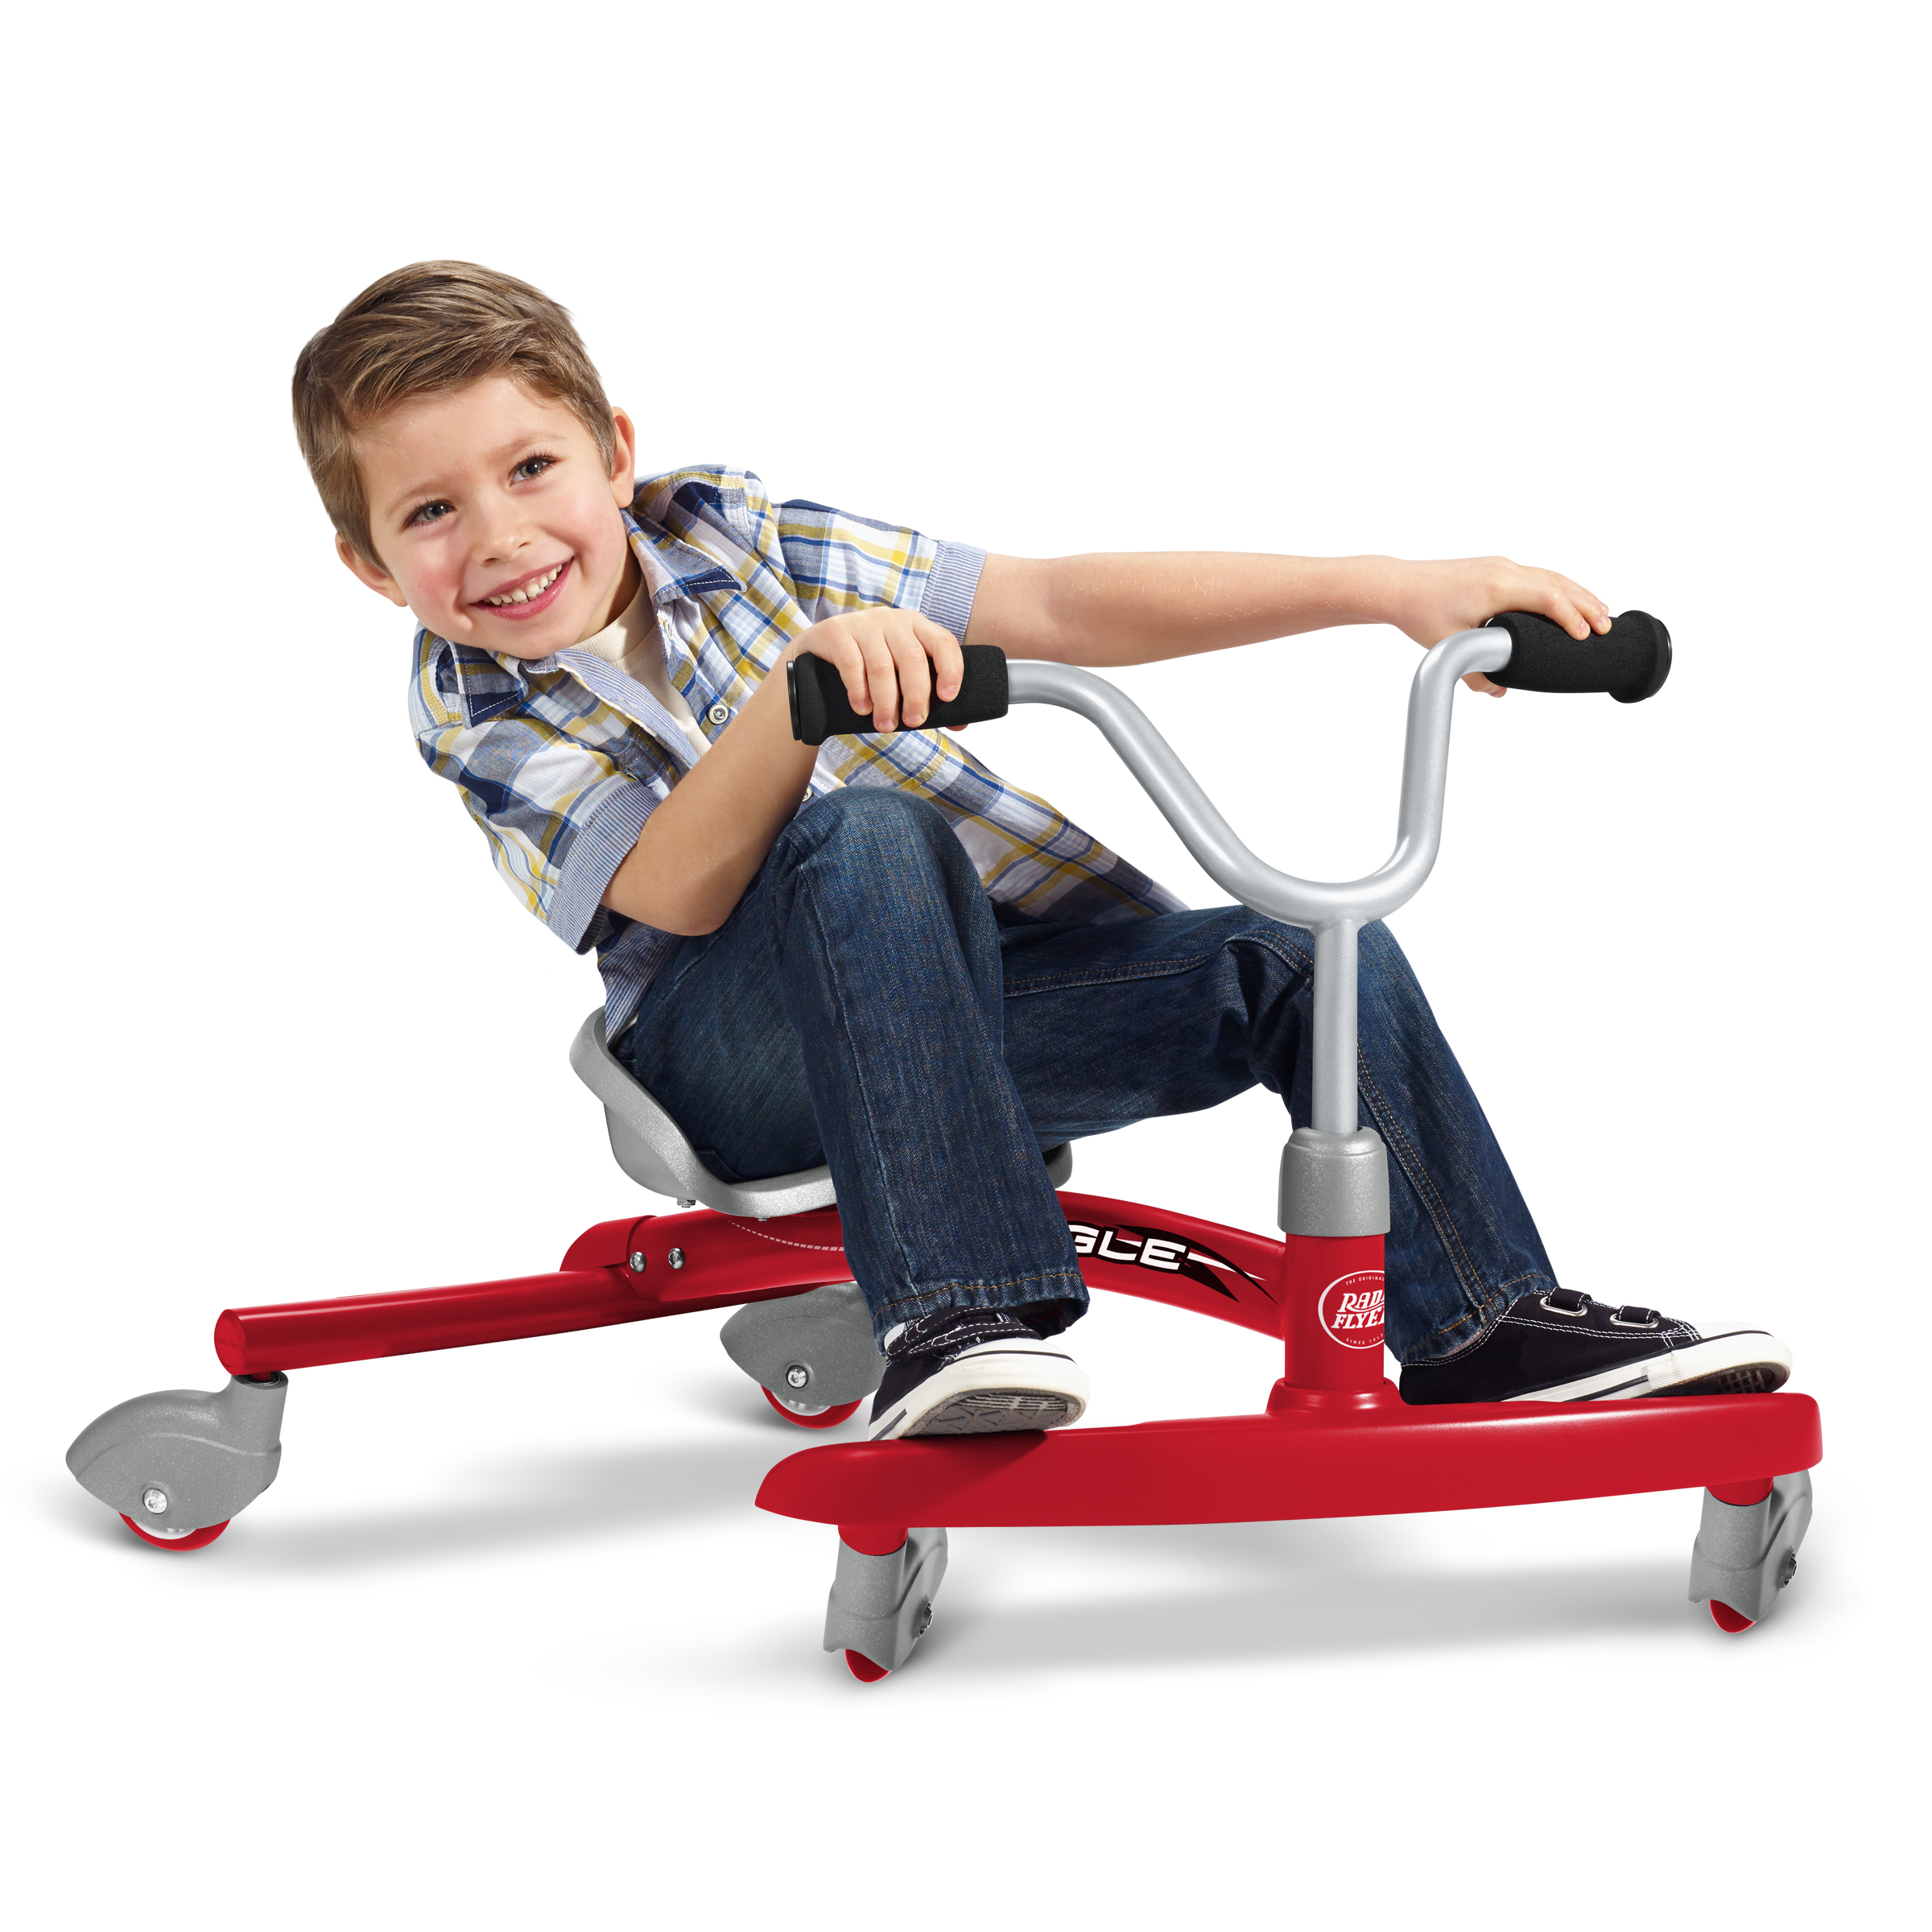 Radio Flyer, Ziggle, Caster Ride-on for Kids, 360 Degree Spins, Red (Walmart)